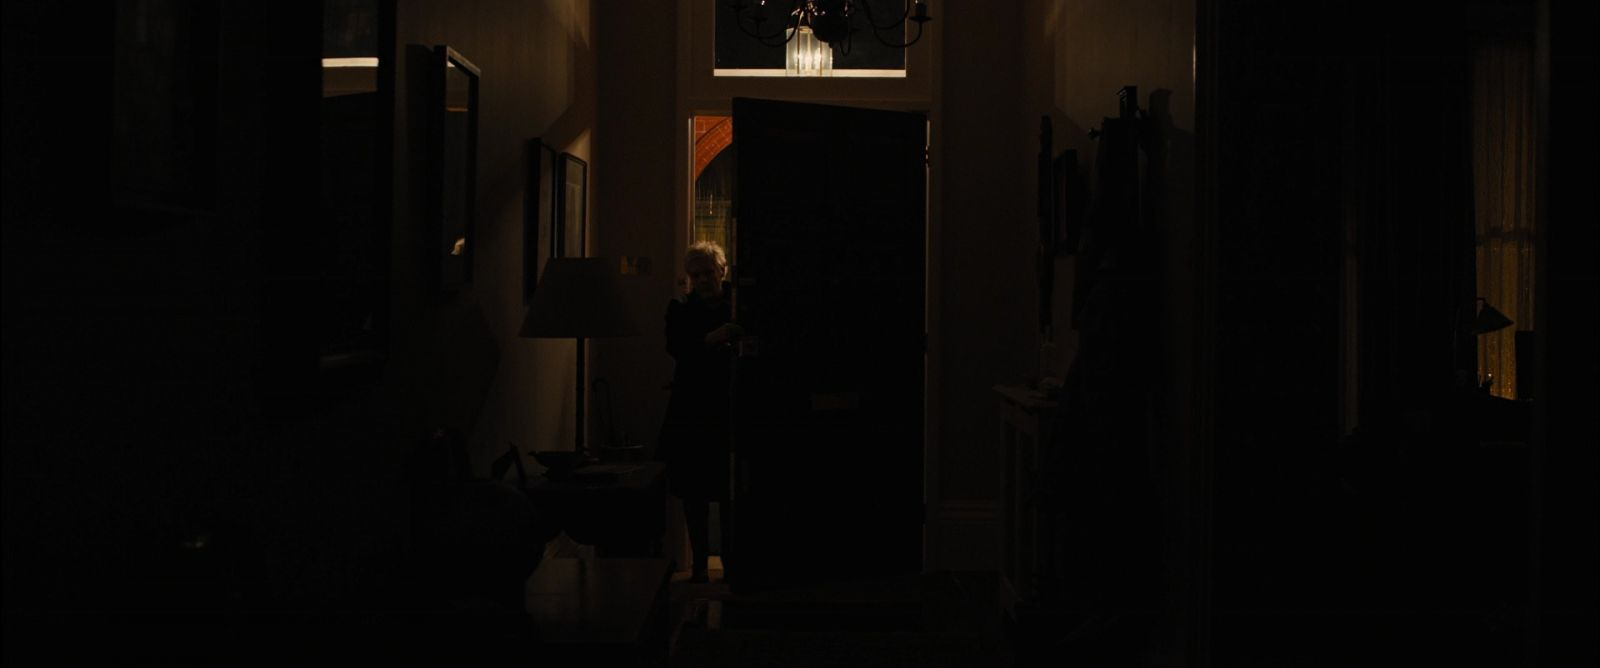 skyfall m s apartments lighting roger a deakins